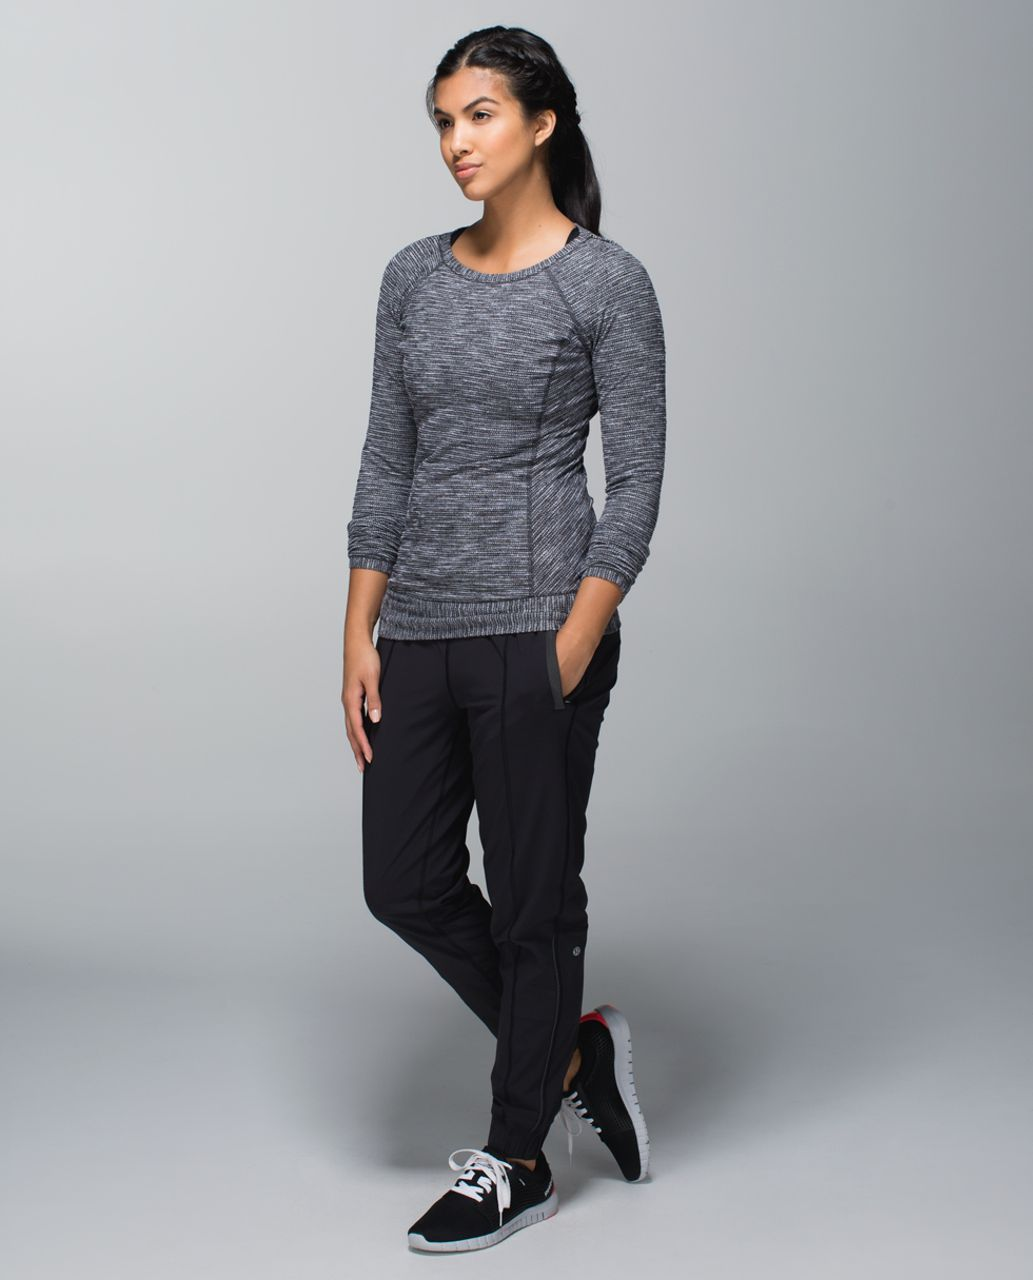 Lululemon Race Your Pace Long Sleeve - Coco Pique Black